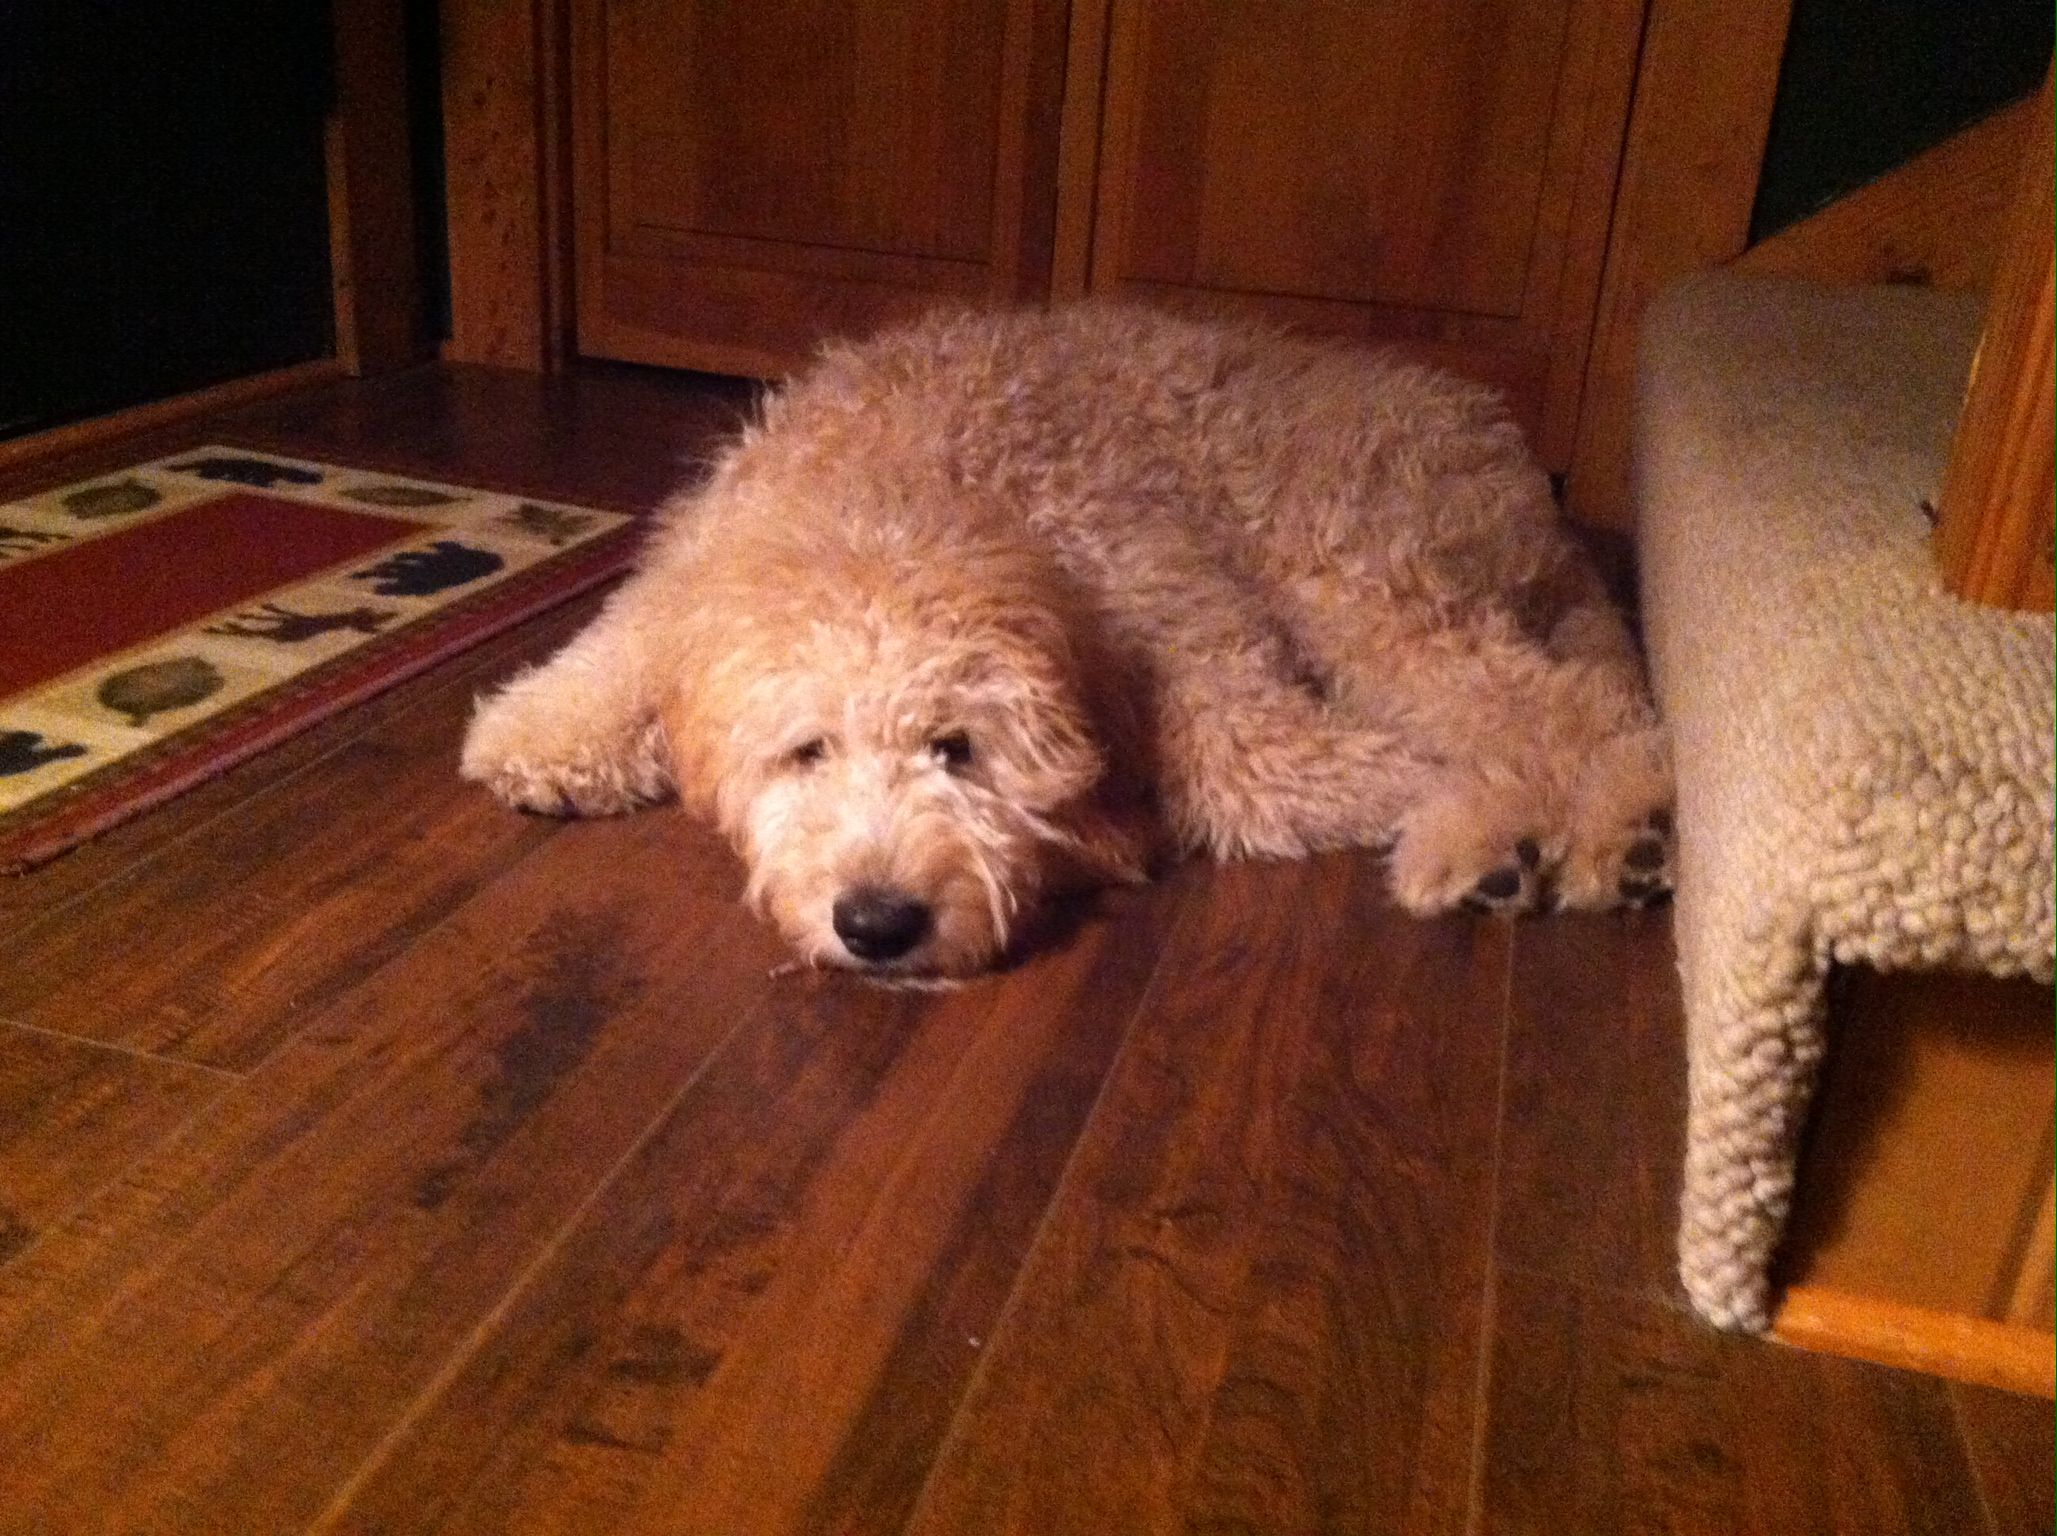 I need to go out so I can come back in again. #goldendoodle